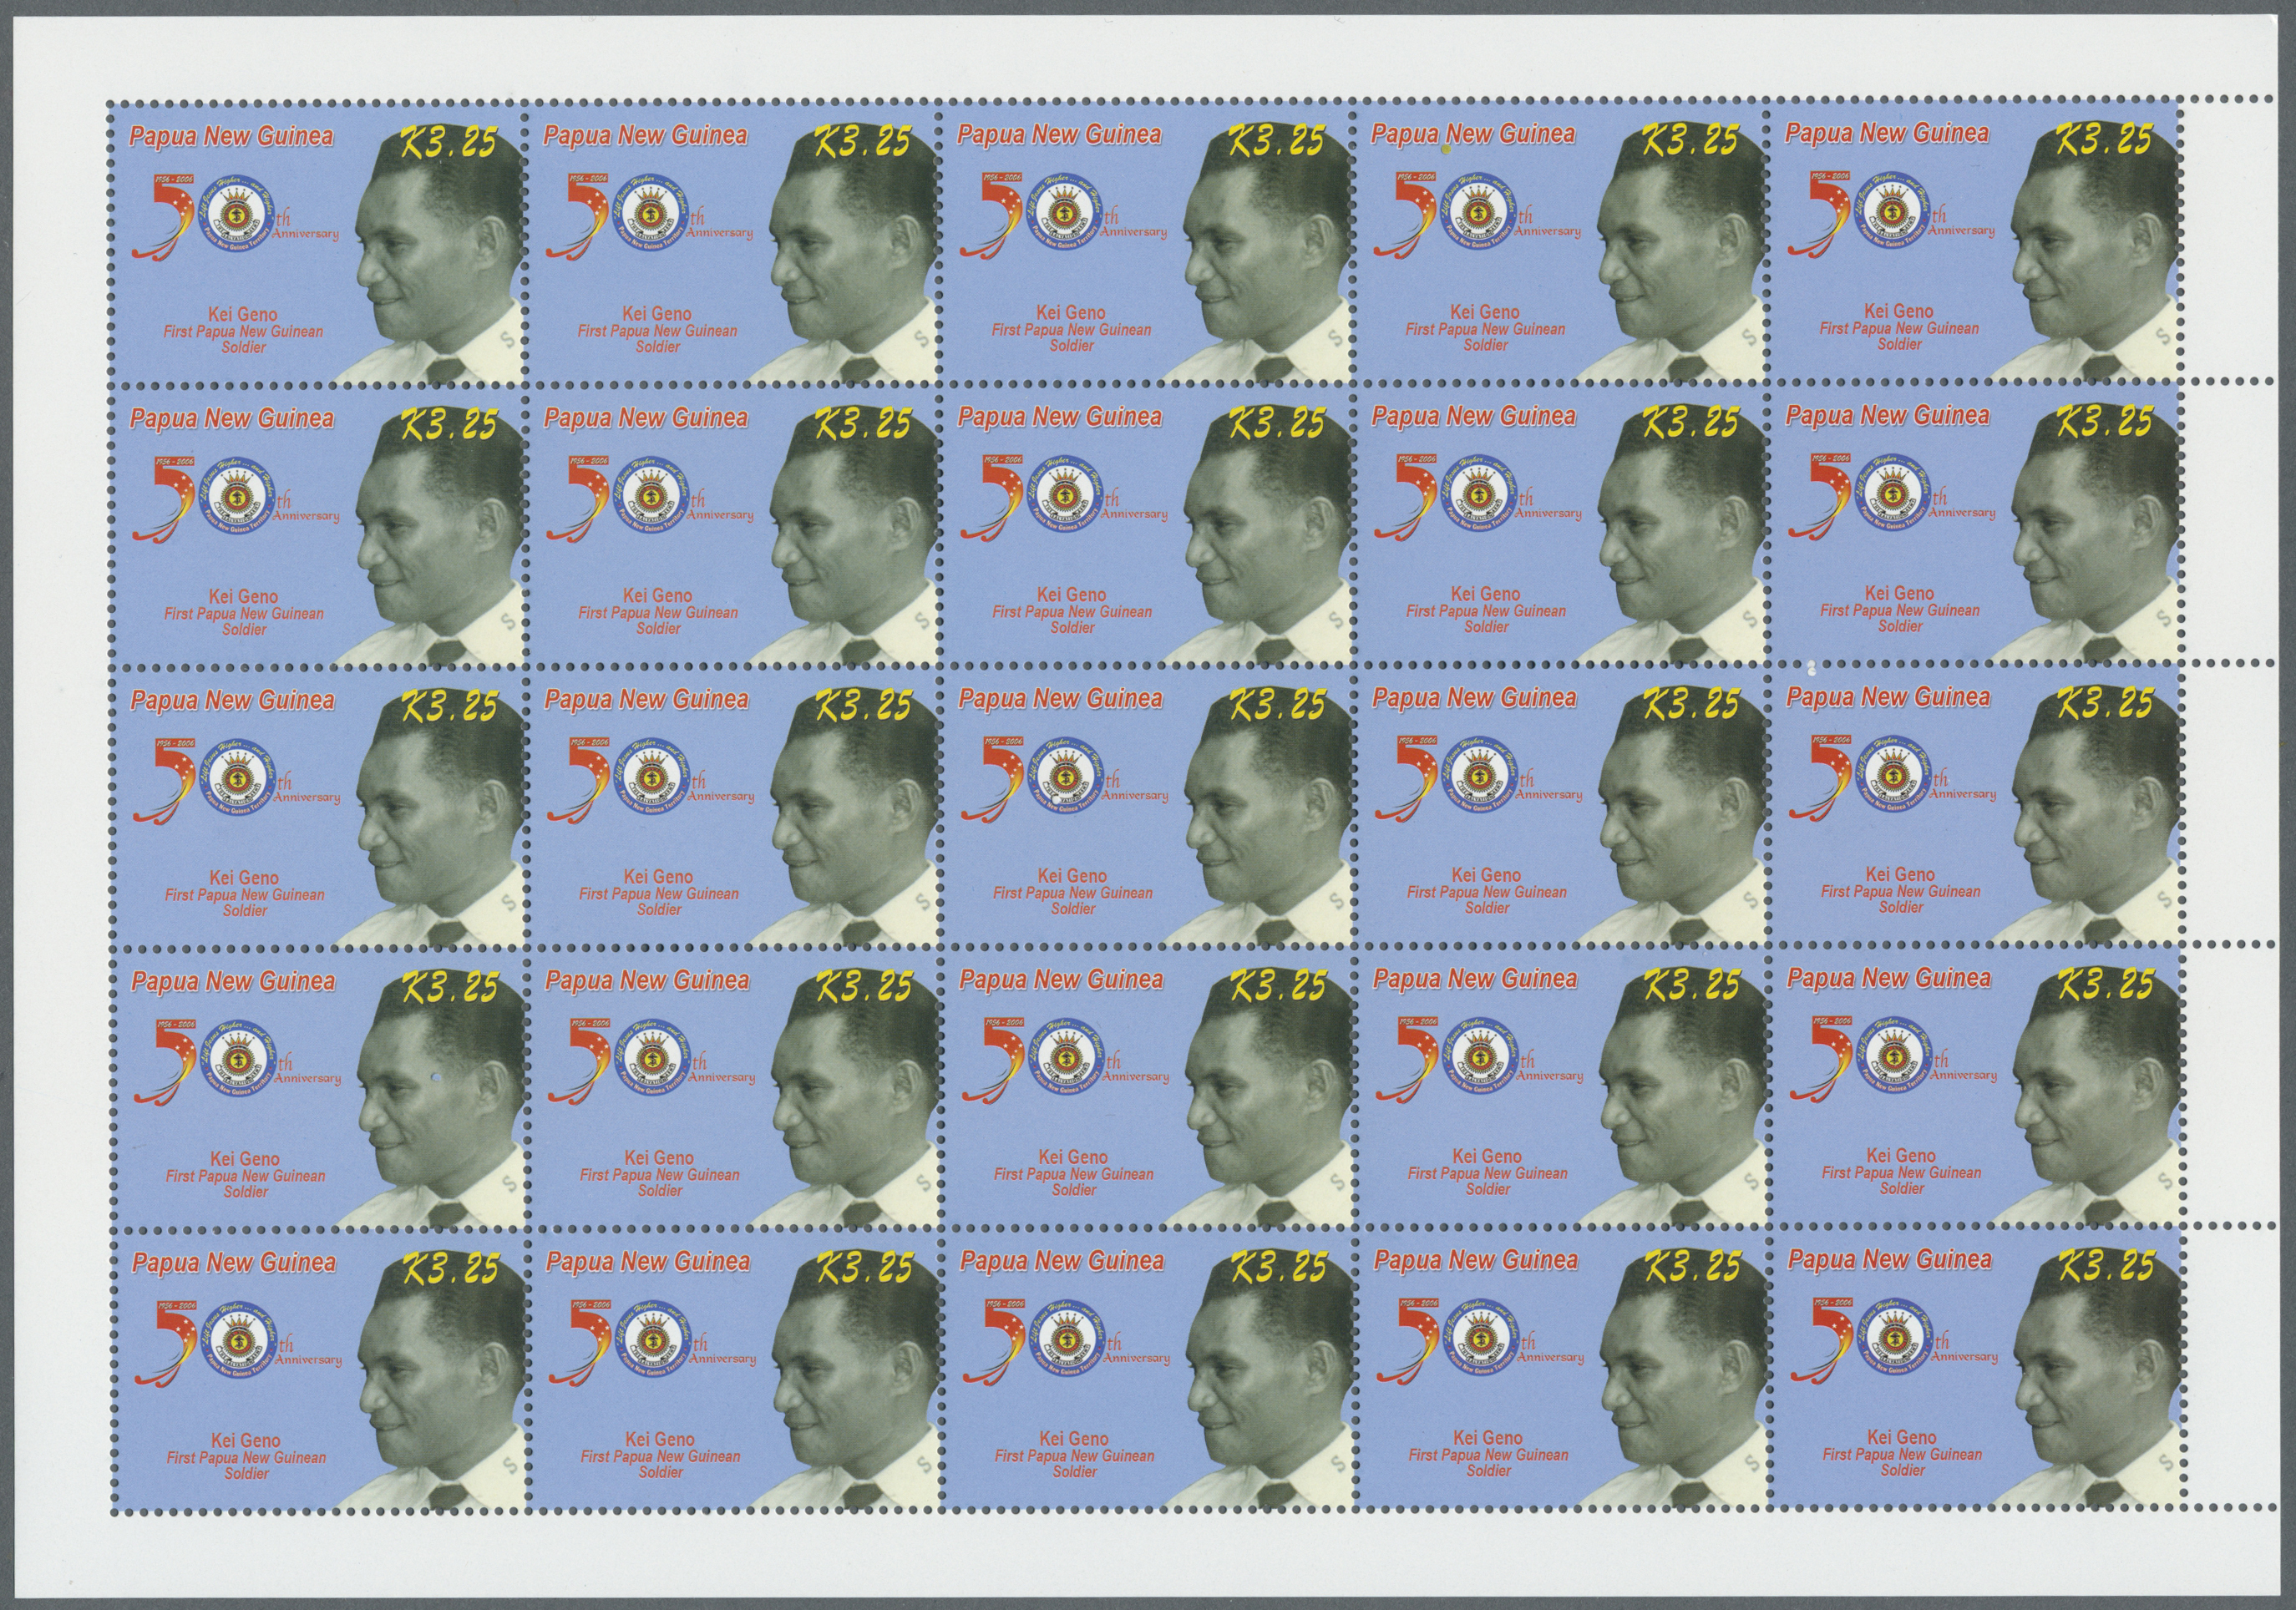 Lot 29619 - papua neuguinea  -  Auktionshaus Christoph Gärtner GmbH & Co. KG Sale #44 Collections Overseas, Europe